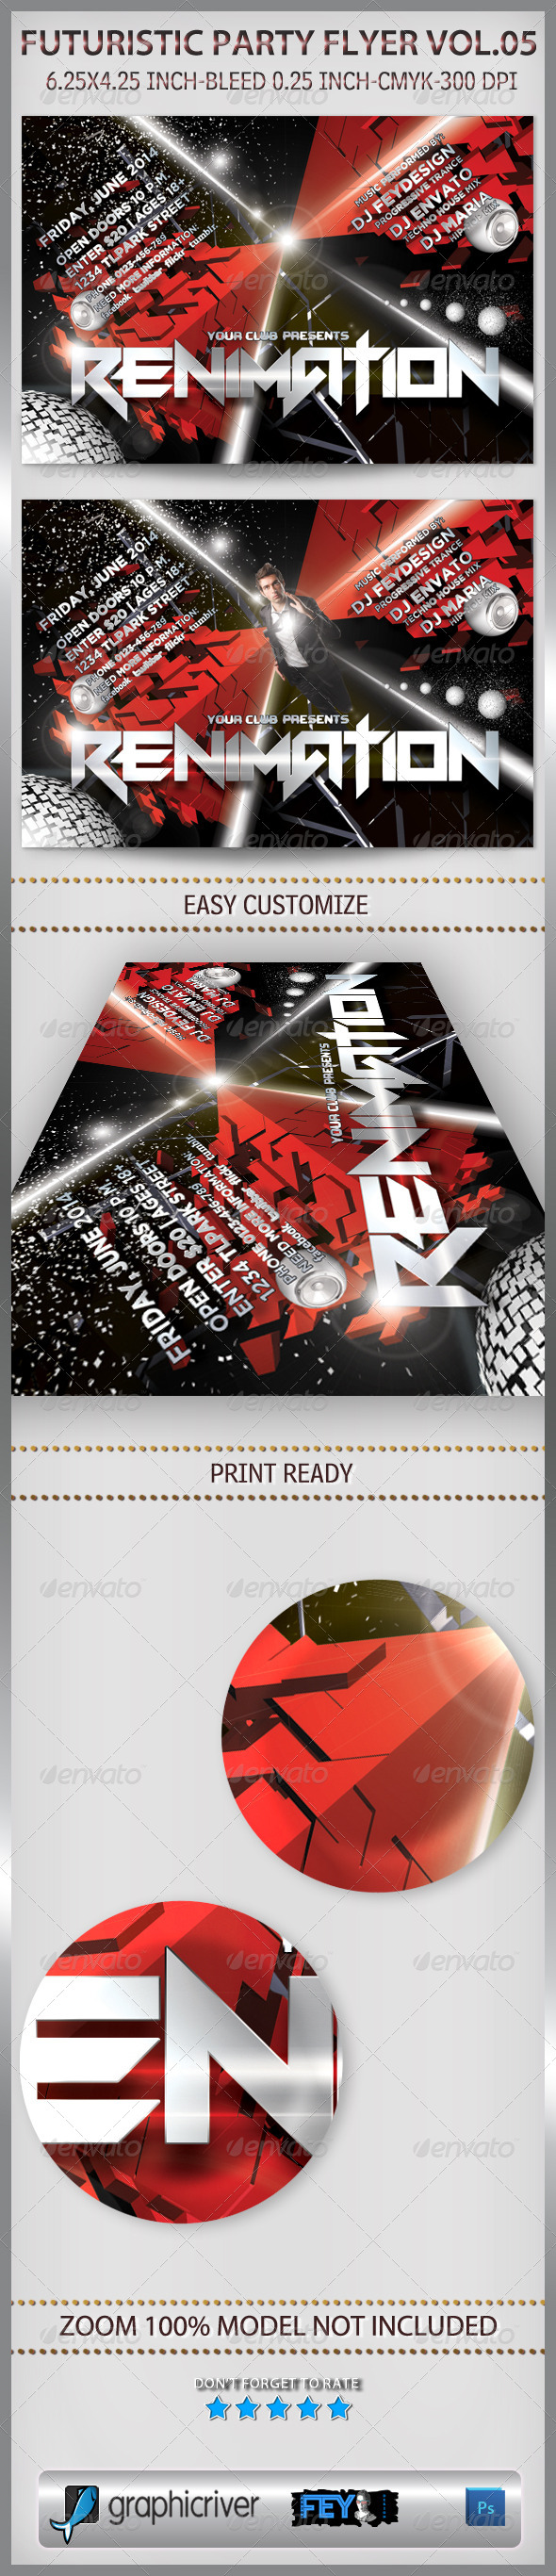 Futuristic Party Flyer Vol.05 - Clubs & Parties Events